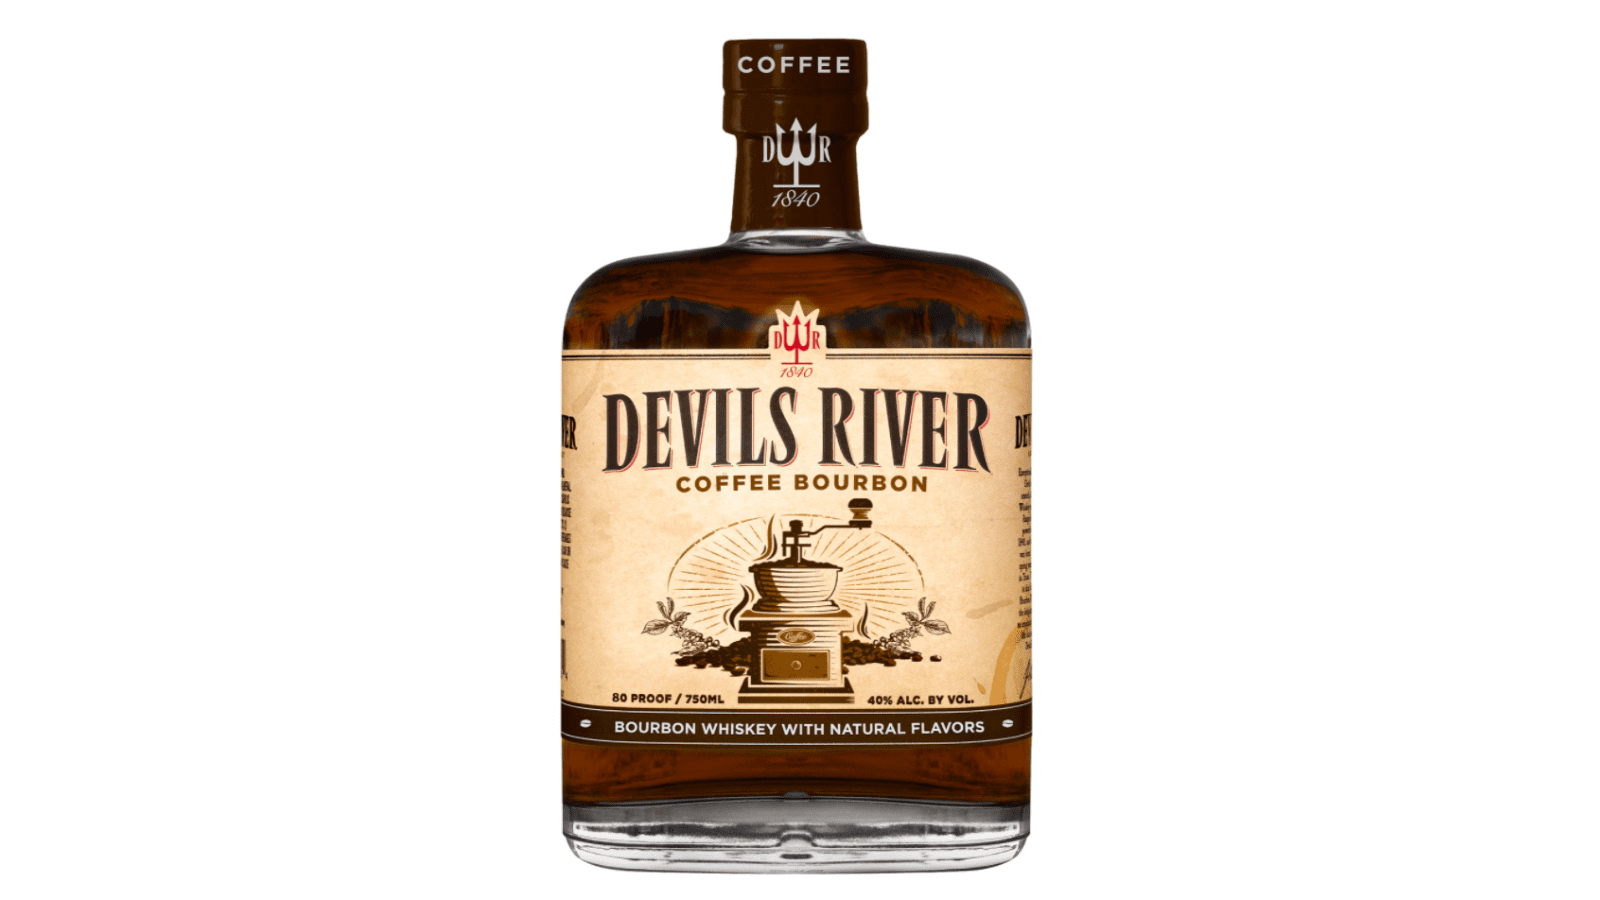 devils river coffee bourbon bottle